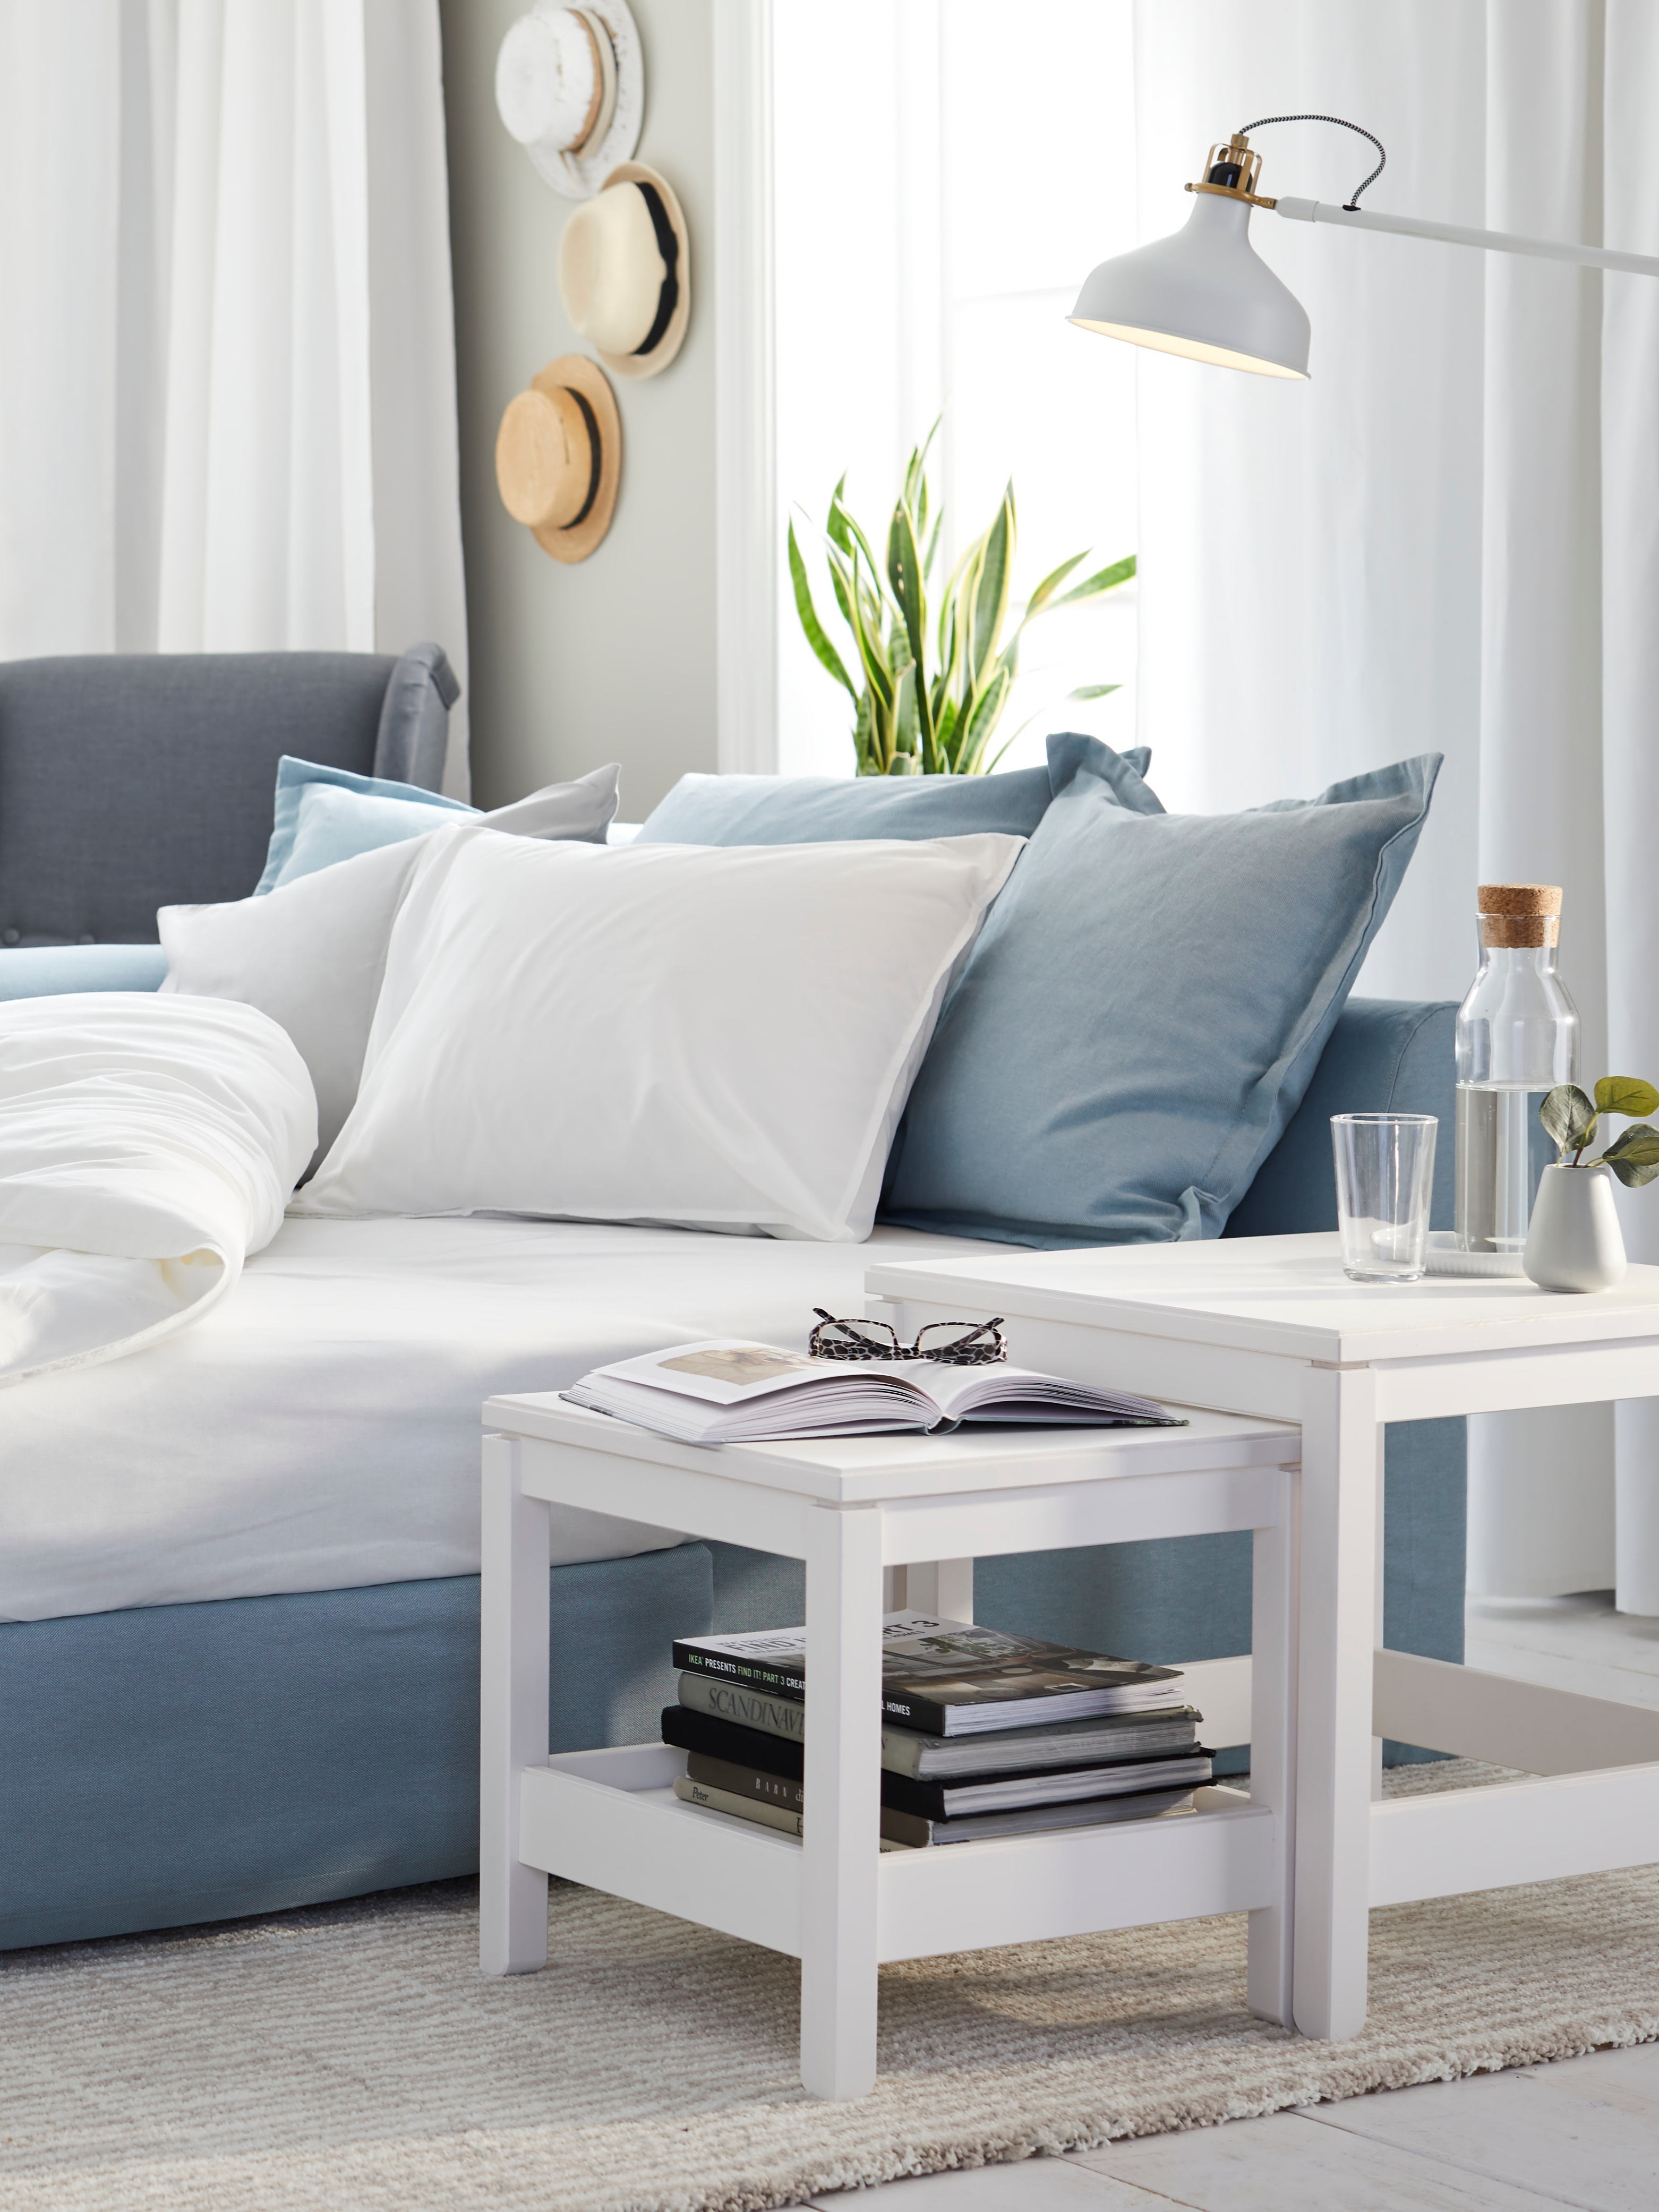 A bright living room with a light blue HOLMSUND sofa-bed set up as a bed, near side tables with books and a glass of water.